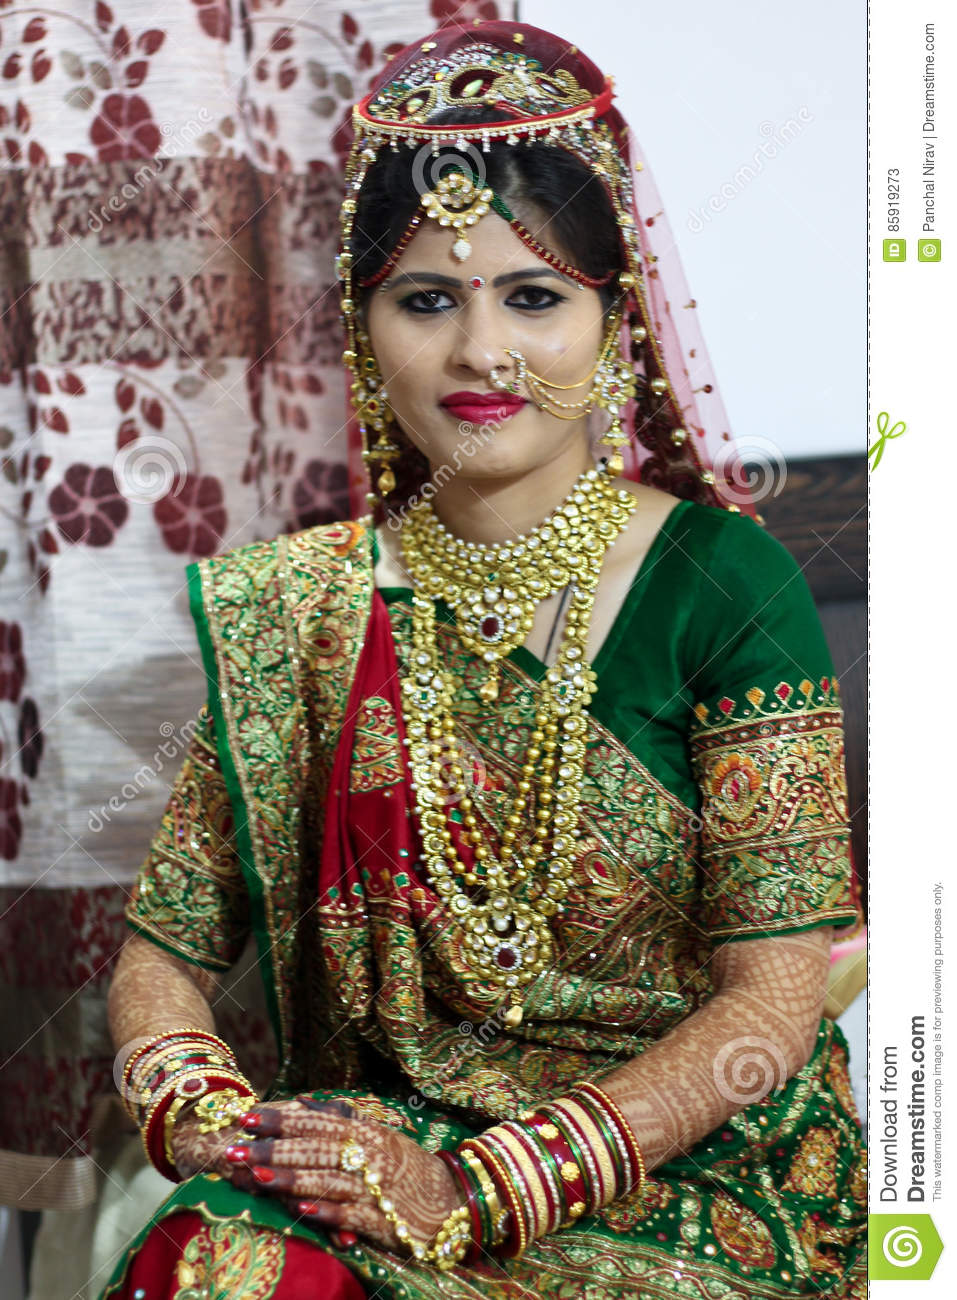 Gujarati lady